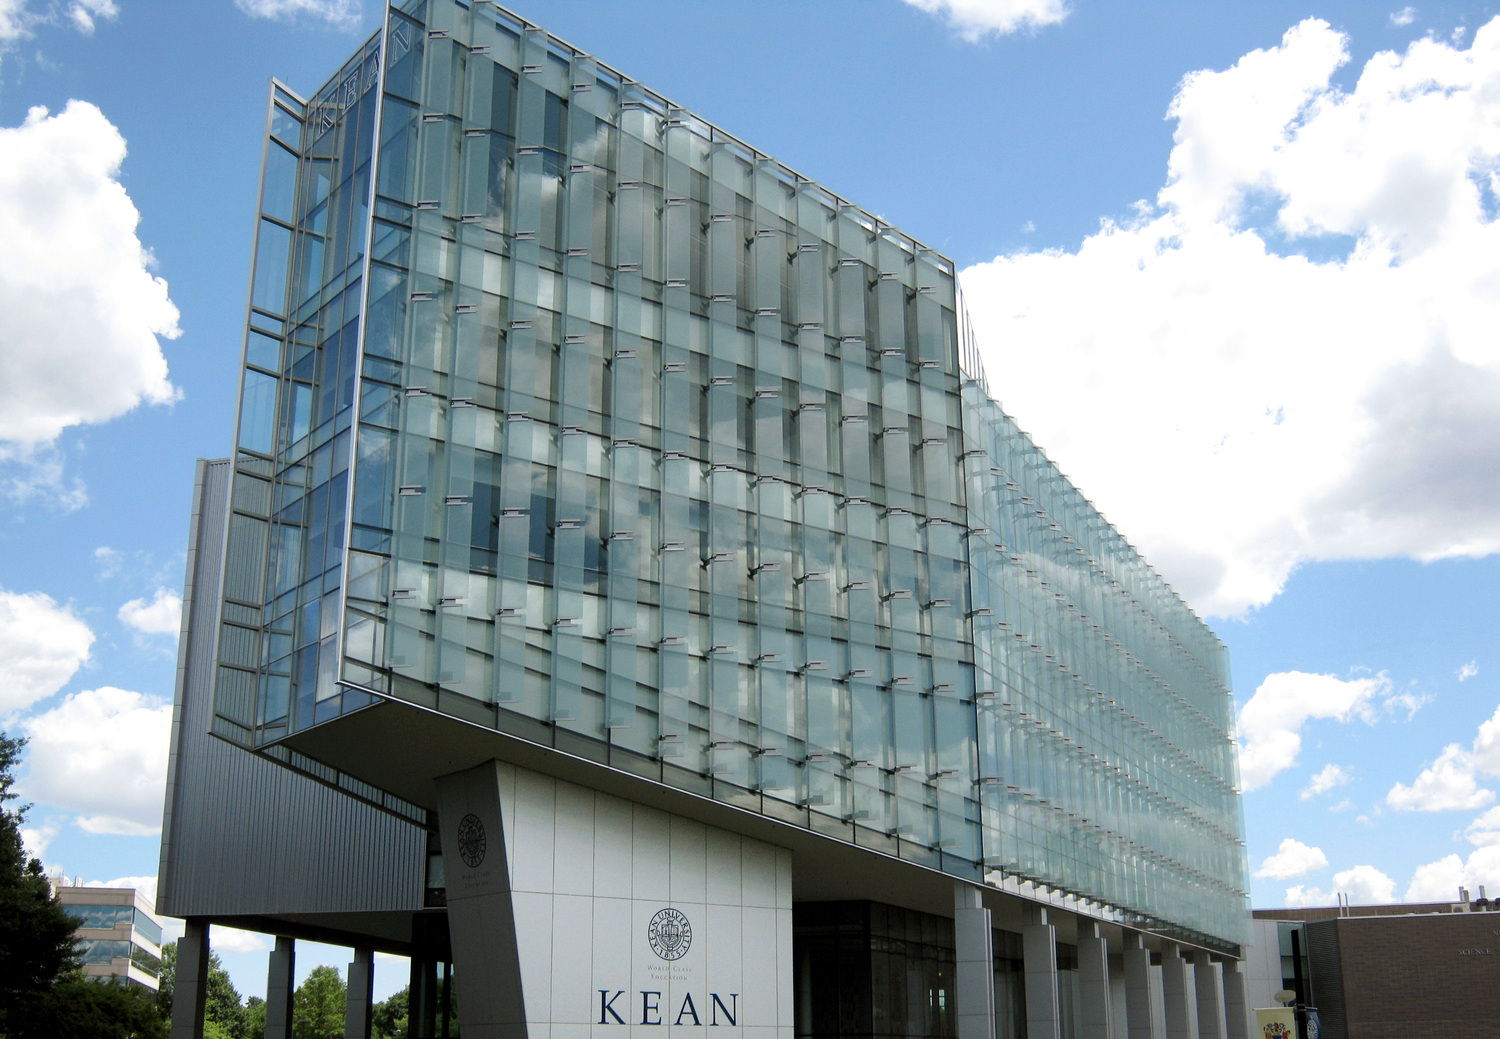 Kean University, New Jersey Center for Science, Technology ... on city university of new york campus map, university of pikeville campus map, heritage university campus map, stockton university campus map, wayne campus map, johnson university campus map, keiser university campus map, west texas a&m university campus map, central methodist university campus map, caldwell university campus map, minnesota state university moorhead campus map, university of texas at san antonio campus map, eastern new mexico university campus map, husson college campus map, cal state fresno campus map, university of the sciences campus map, armstrong university campus map, university of cincinnati medical campus map, university of north georgia campus map, cook college campus map,